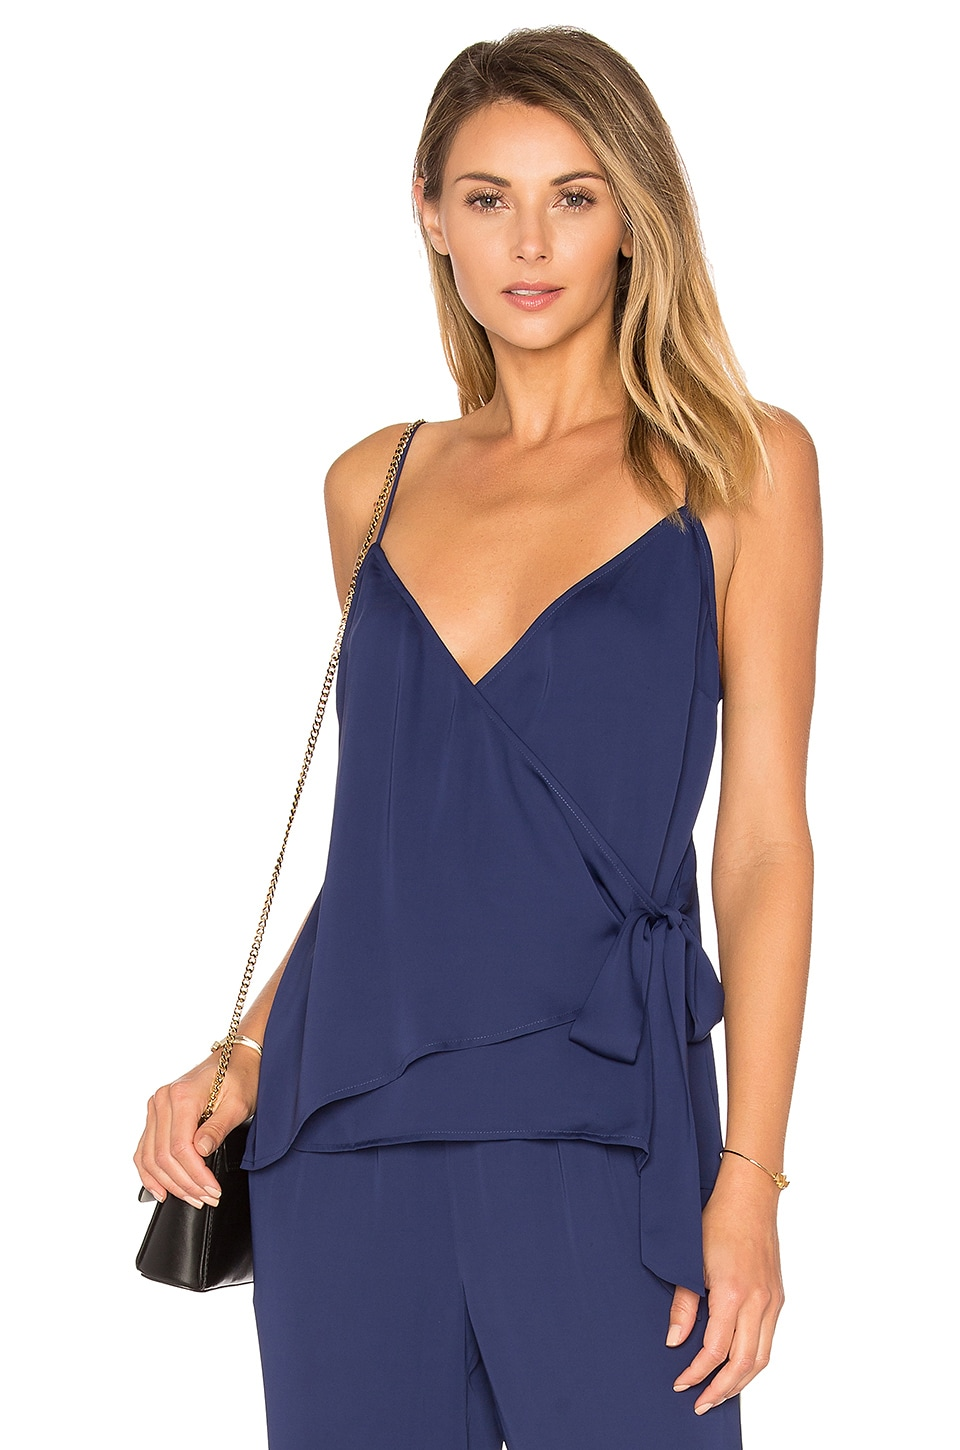 L'Academie The Wrap Cami in Navy